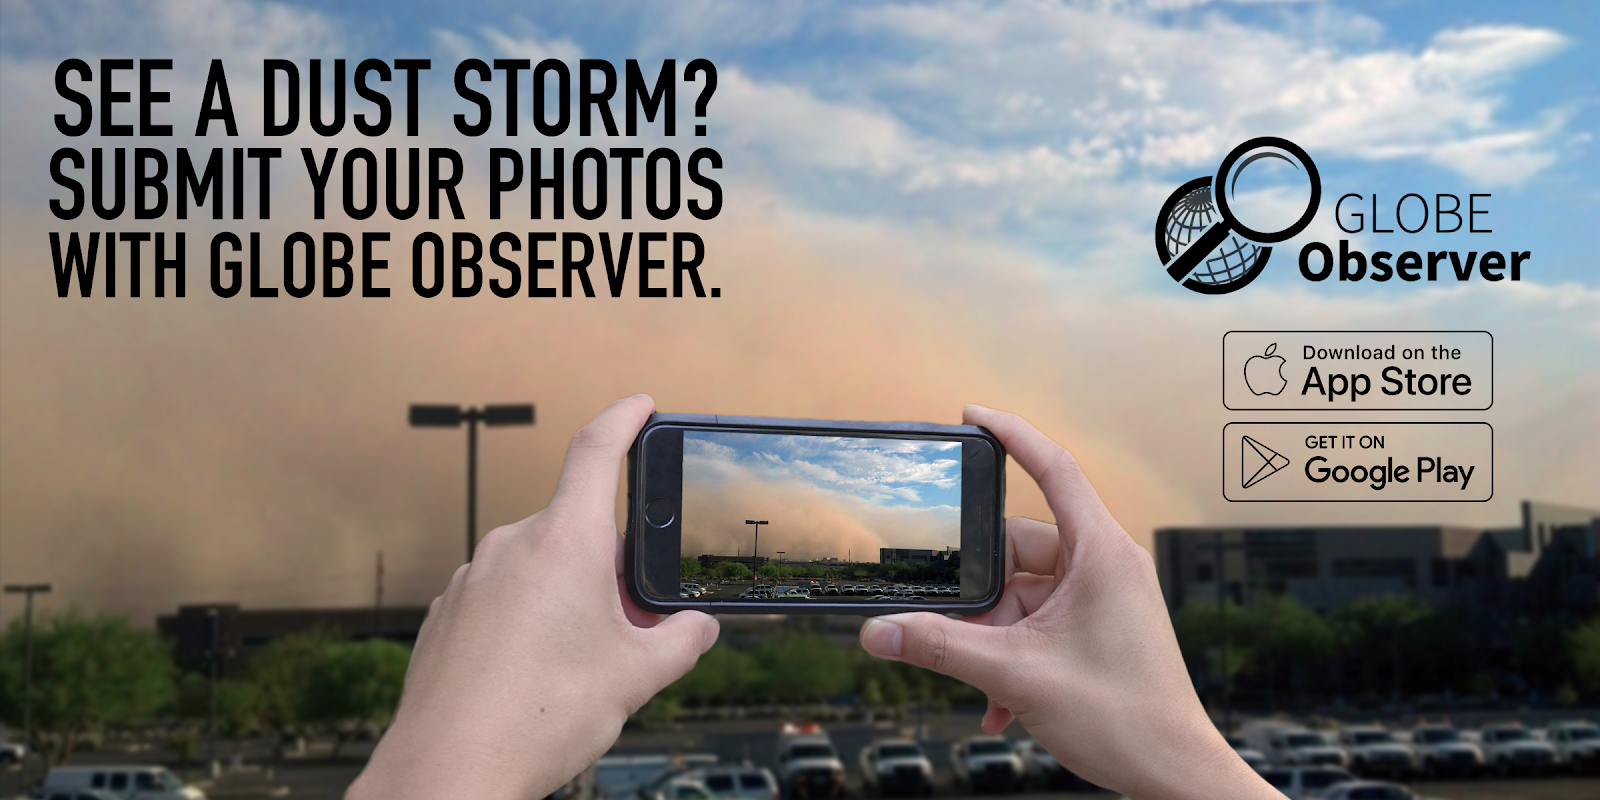 See a dust storm? Submit your photos with GLOBE Observer.